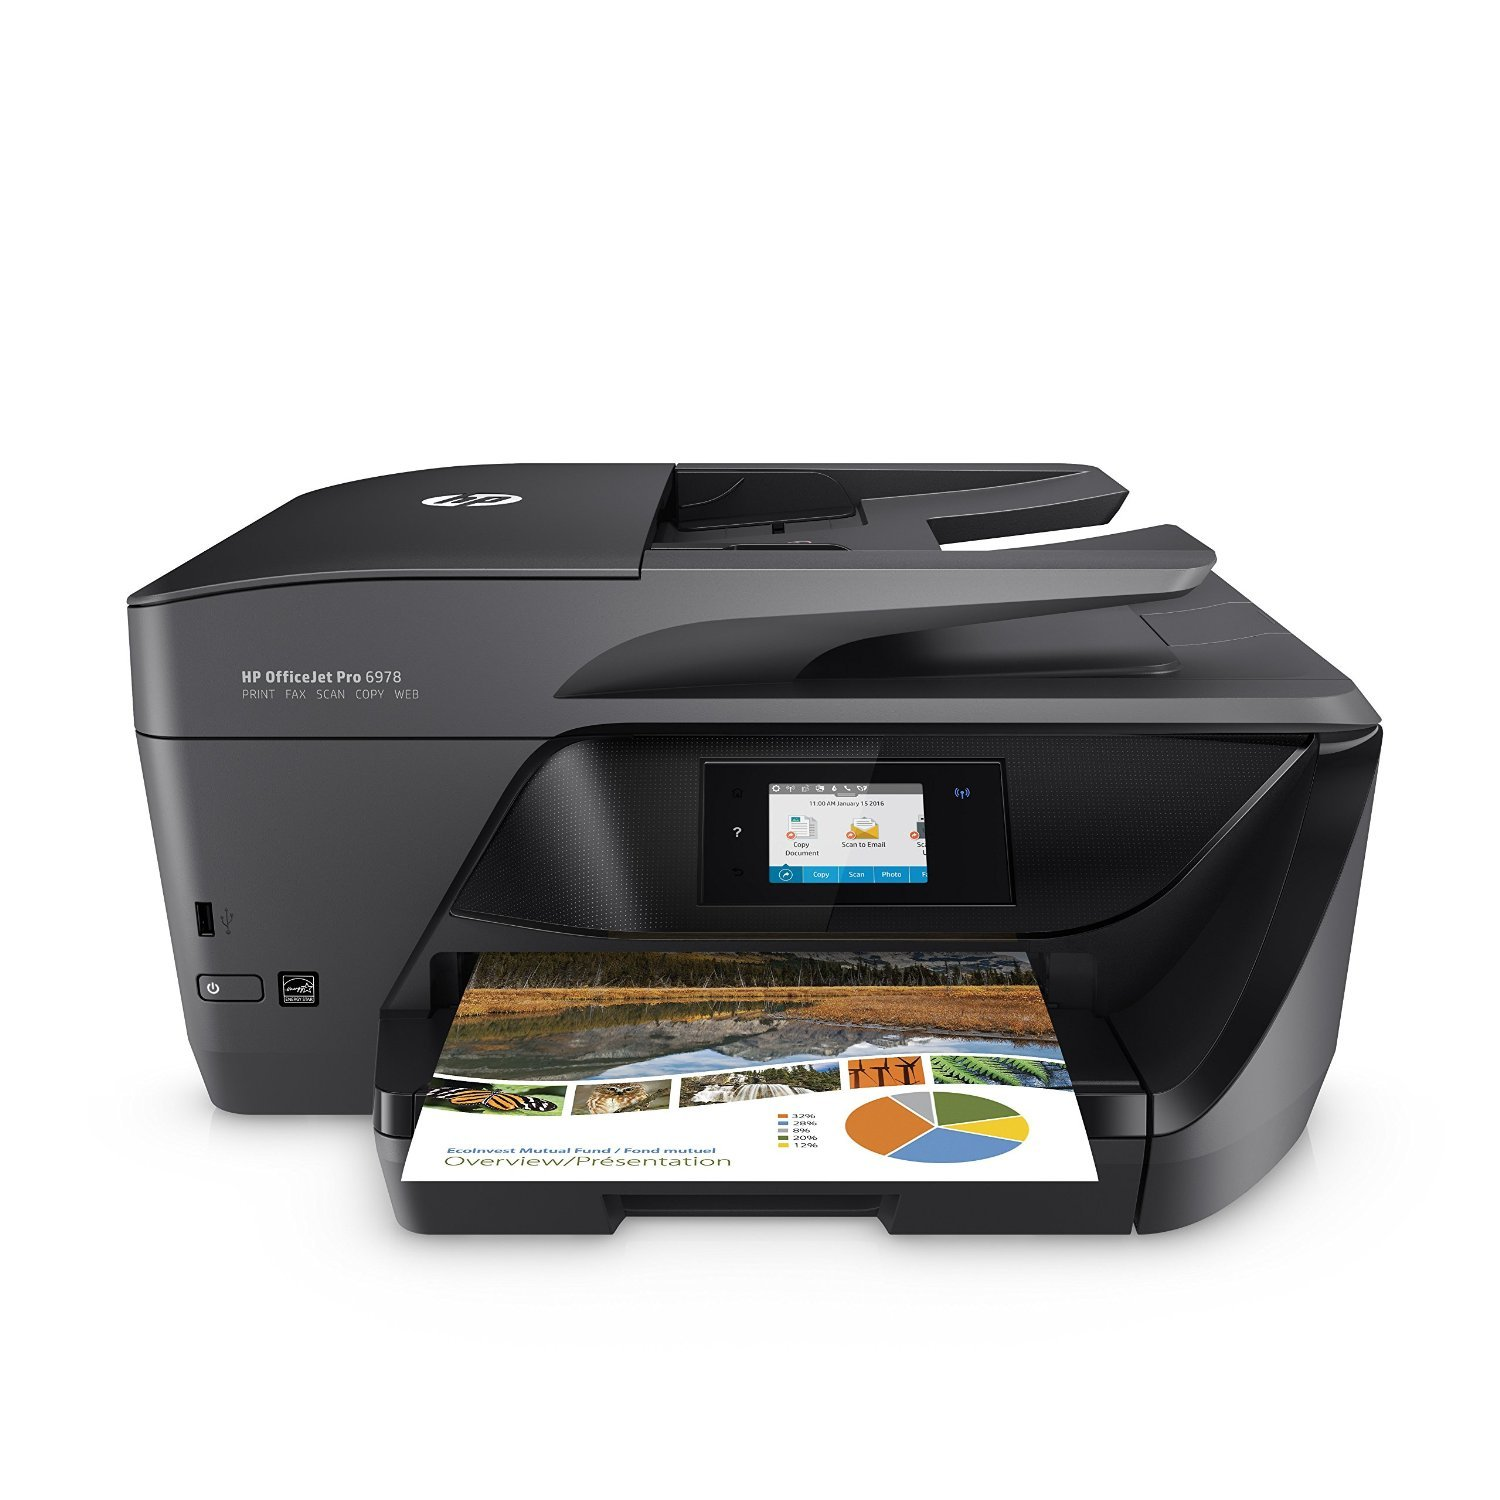 HP OfficeJet Pro 6978 All-in-One Wireless Printer with Mobile Printing, HP Instant Ink & Amazon Dash Replenishment ready (T0F29A)